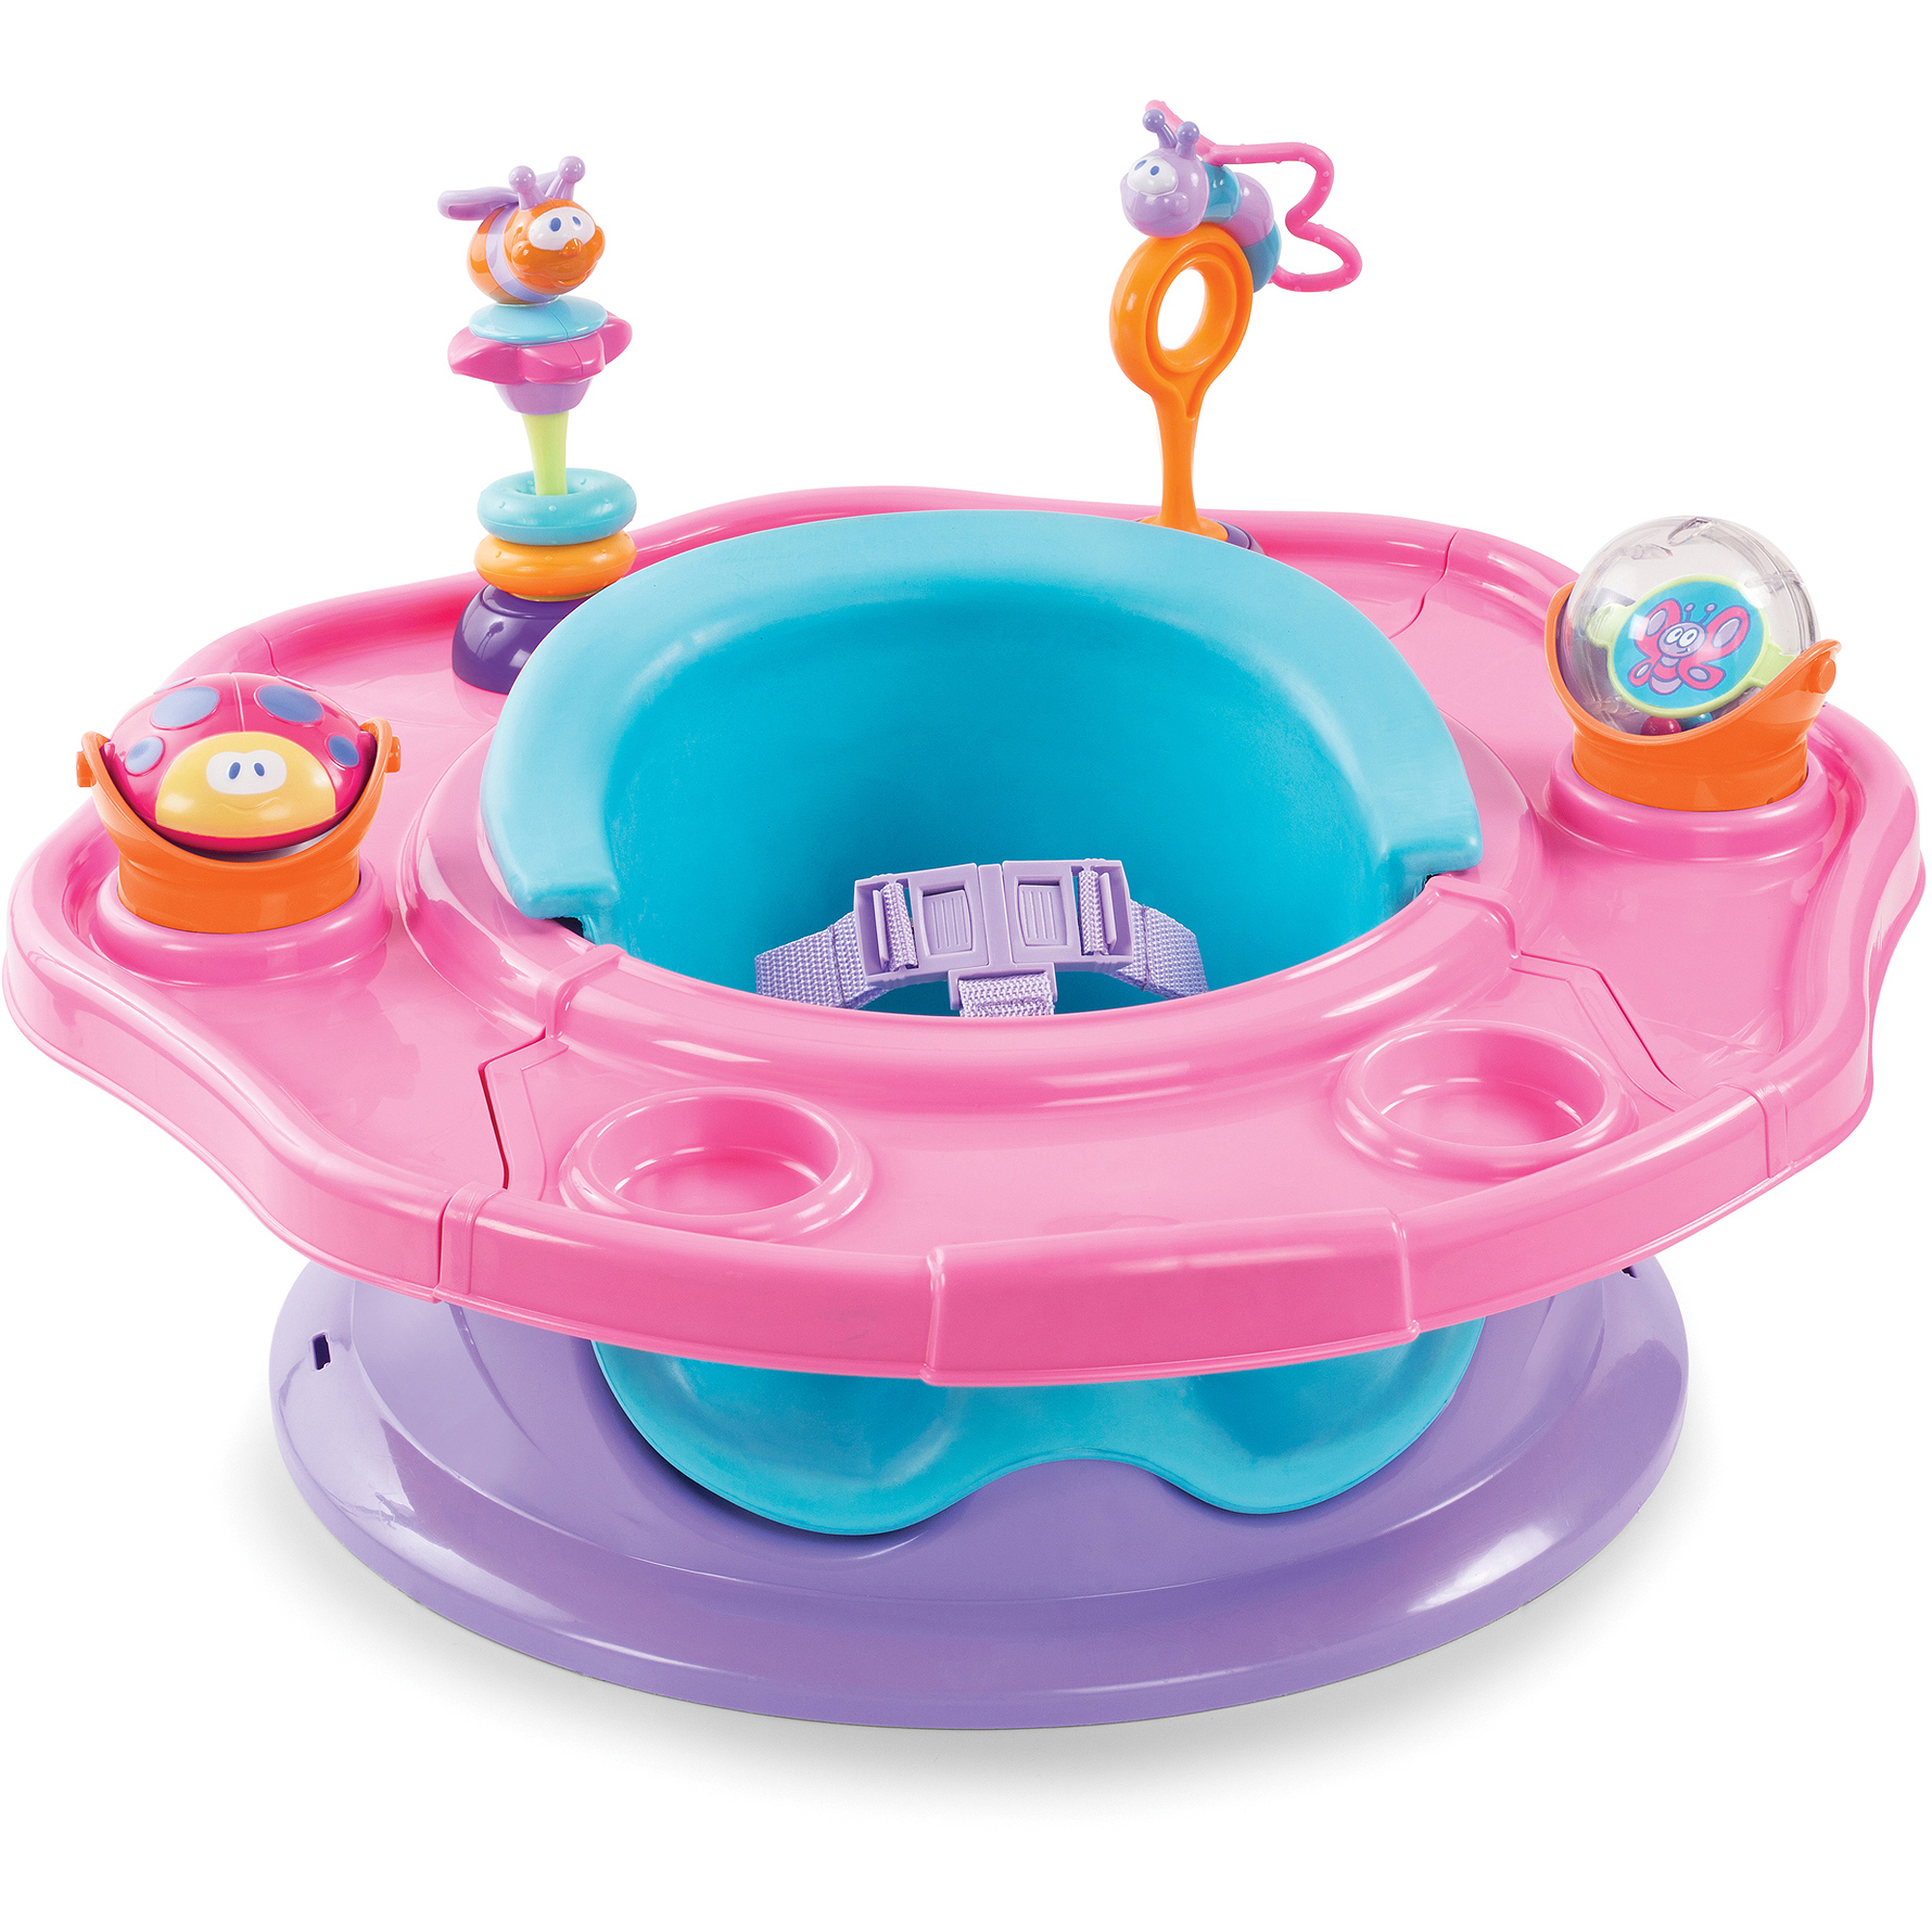 Sumer Infant 3-Stage SuperSeat, Pink